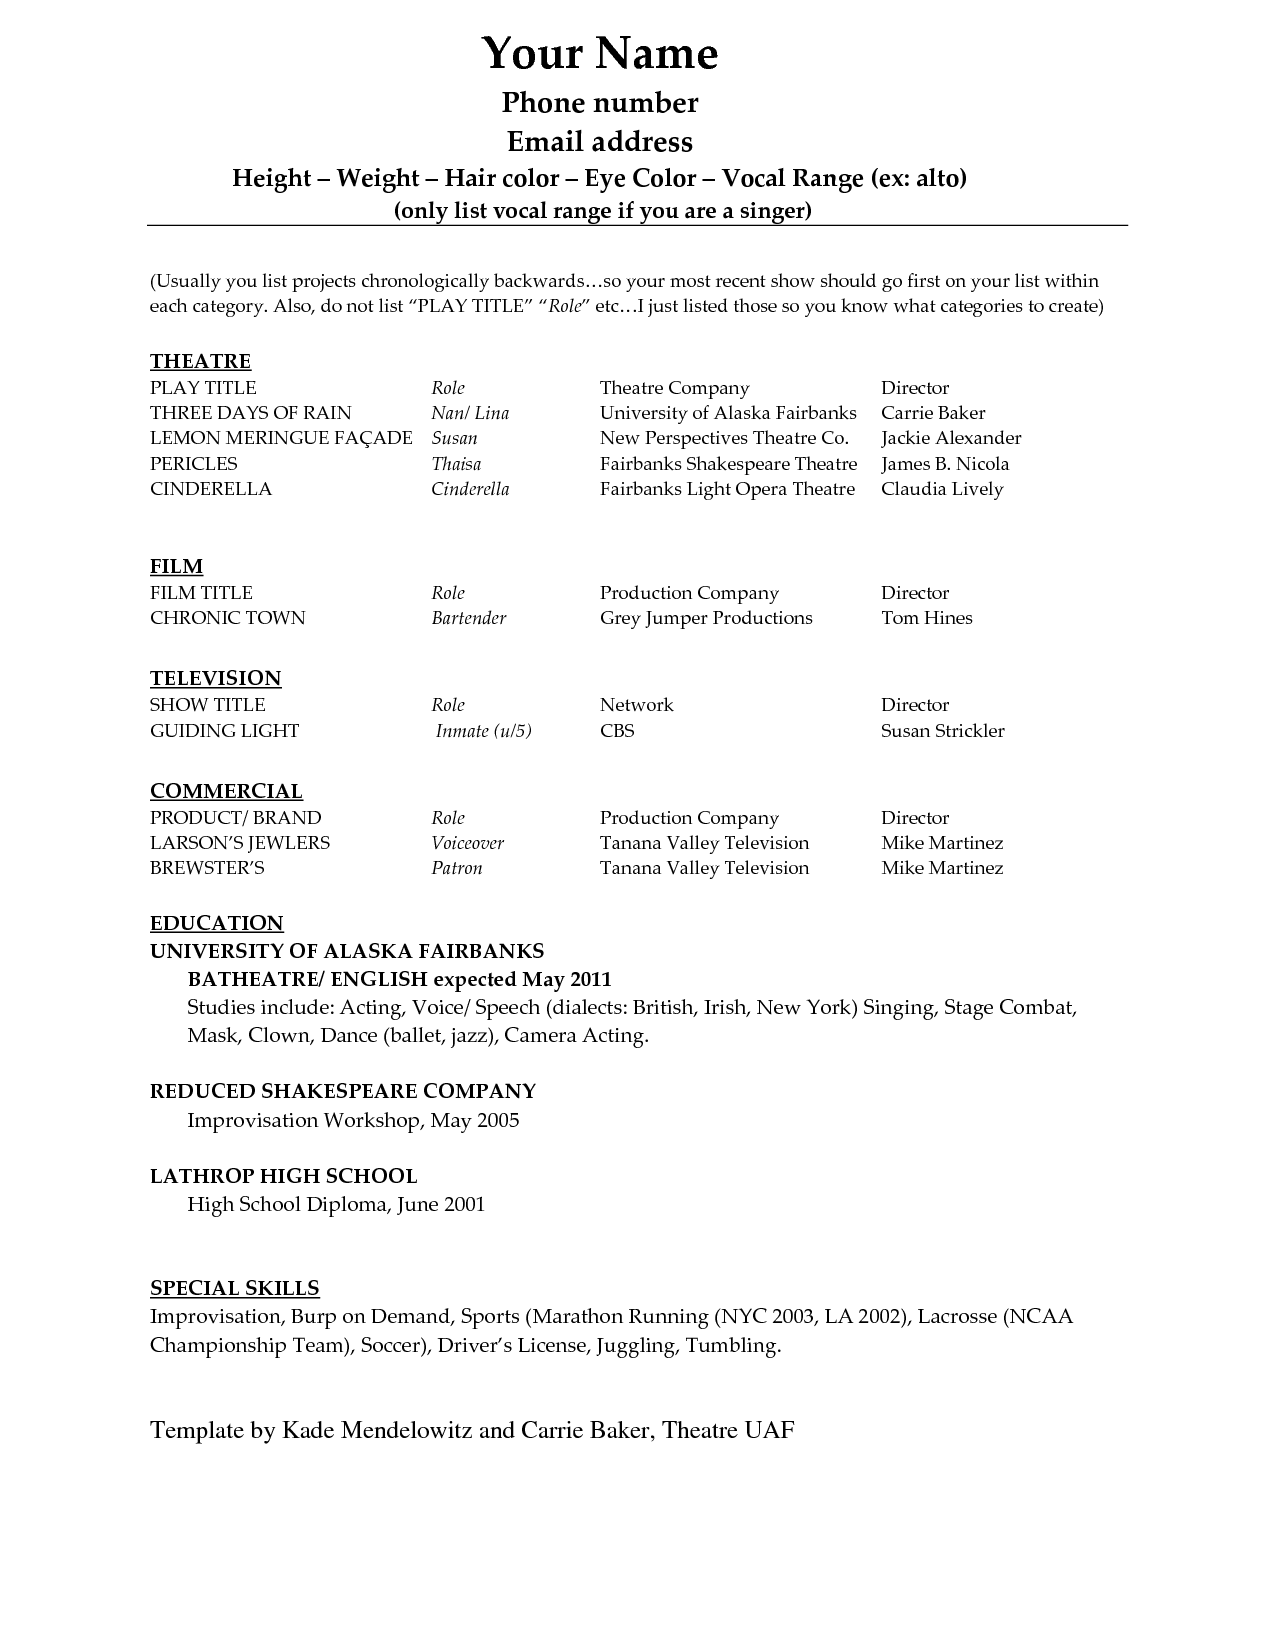 acting resume template download free httpwwwresumecareerinfo - Resume Templates Microsoft Word 2010